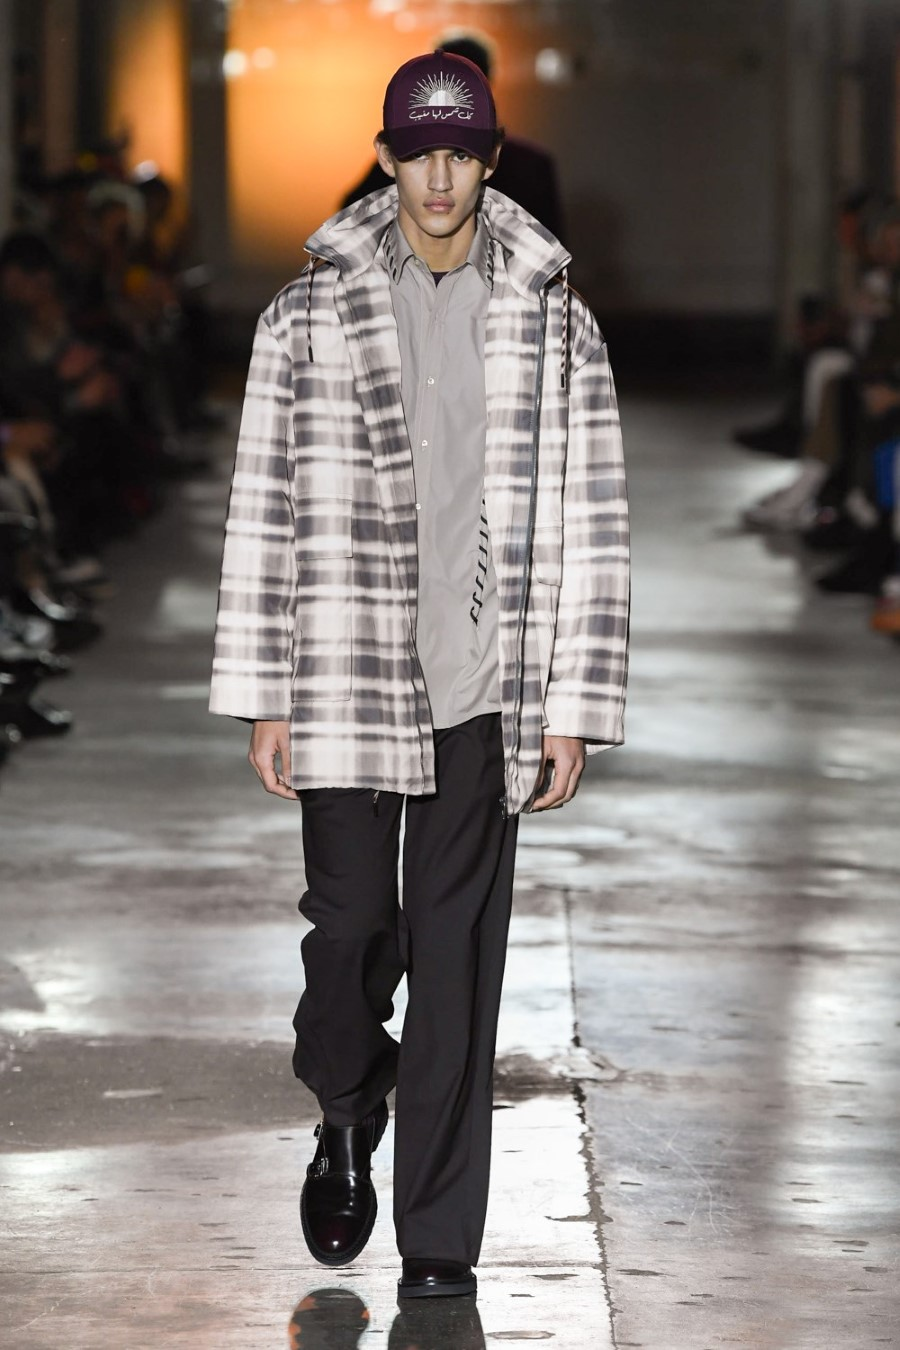 QASIMI - Automne-Hiver 2020-2021 - London Fashion Week Men's